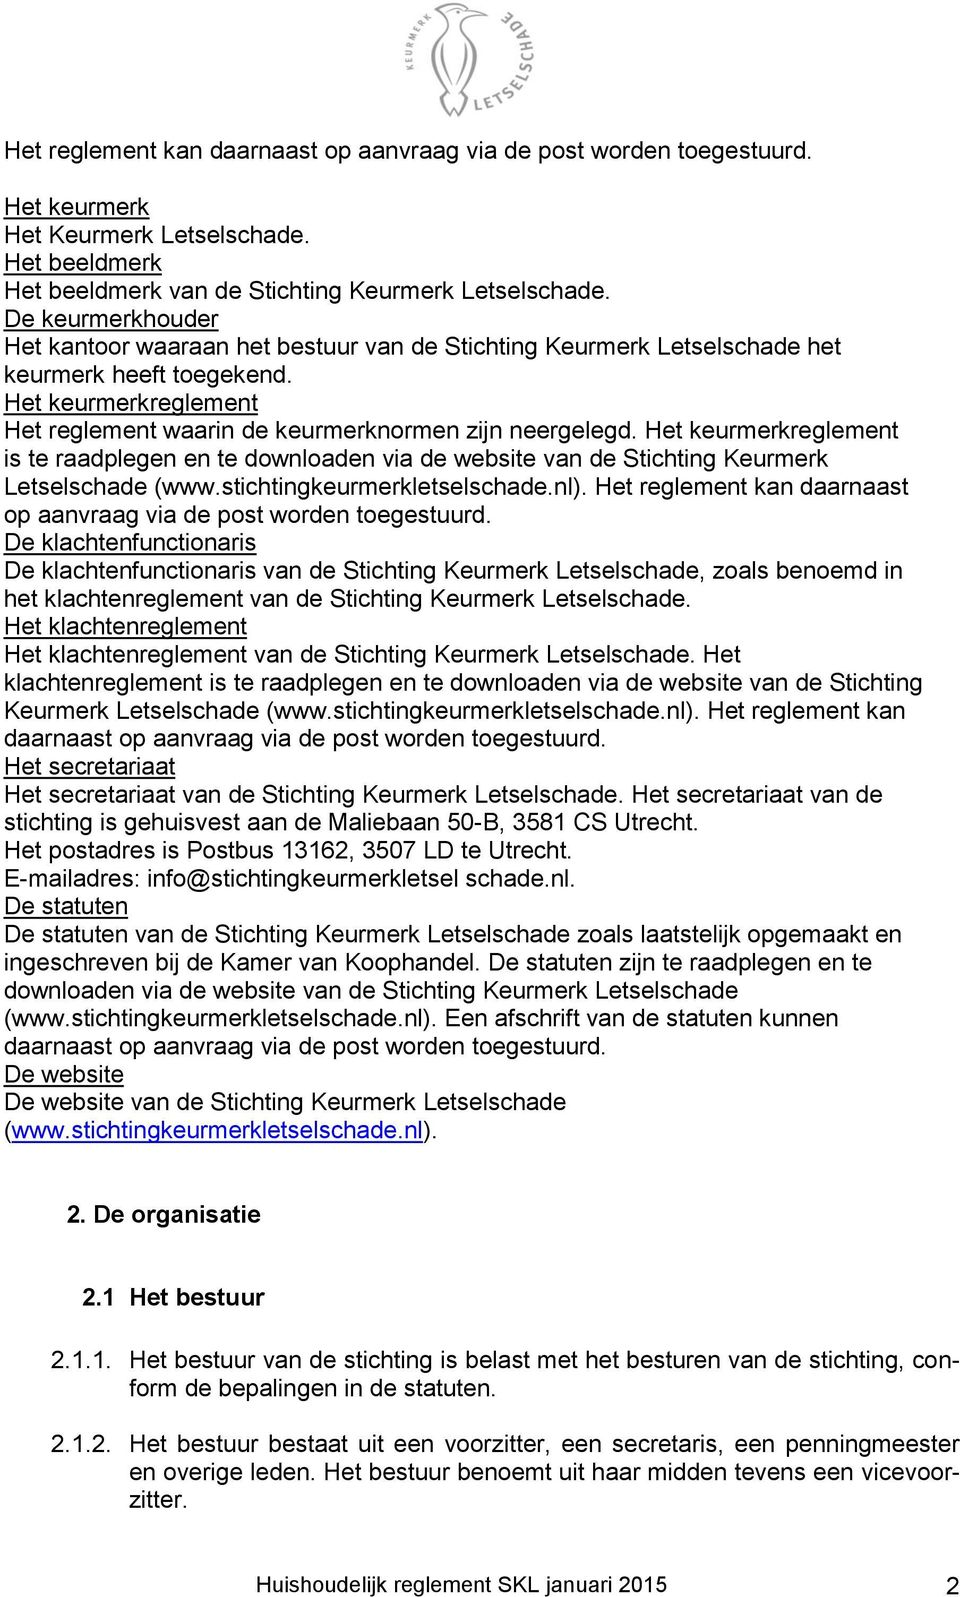 Het keurmerkreglement is te raadplegen en te downloaden via de website van de Stichting Keurmerk Letselschade (www.stichtingkeurmerkletselschade.nl).